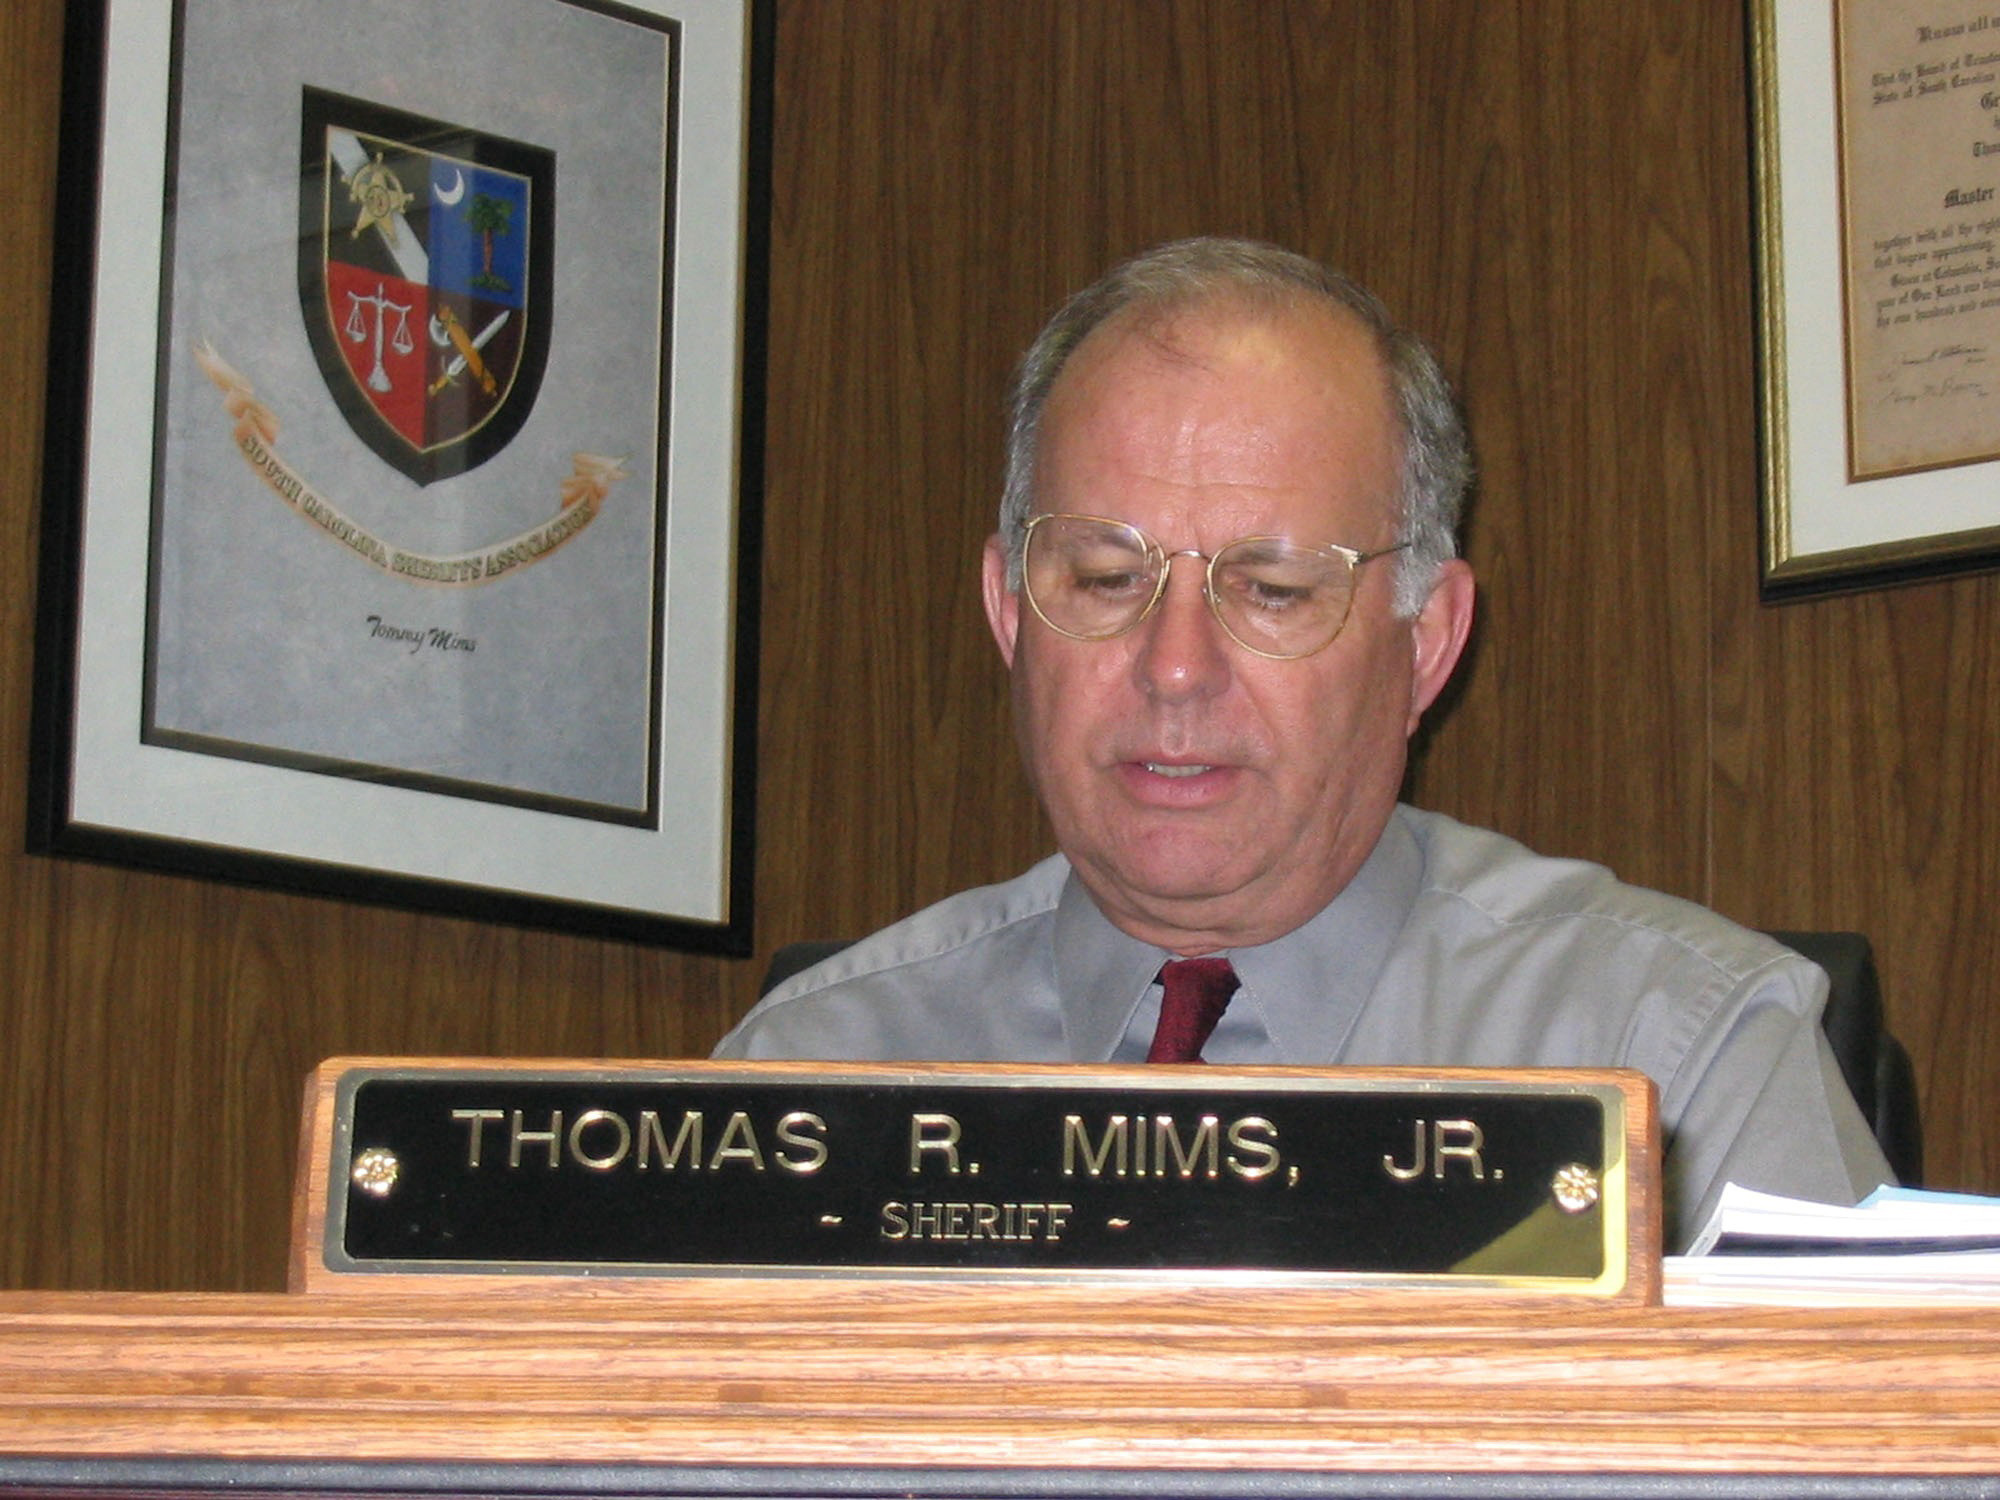 Thomas R. Mims Jr. was elected sheriff in 1988 and was with Sumter County Sheriff's Office for 40 years.